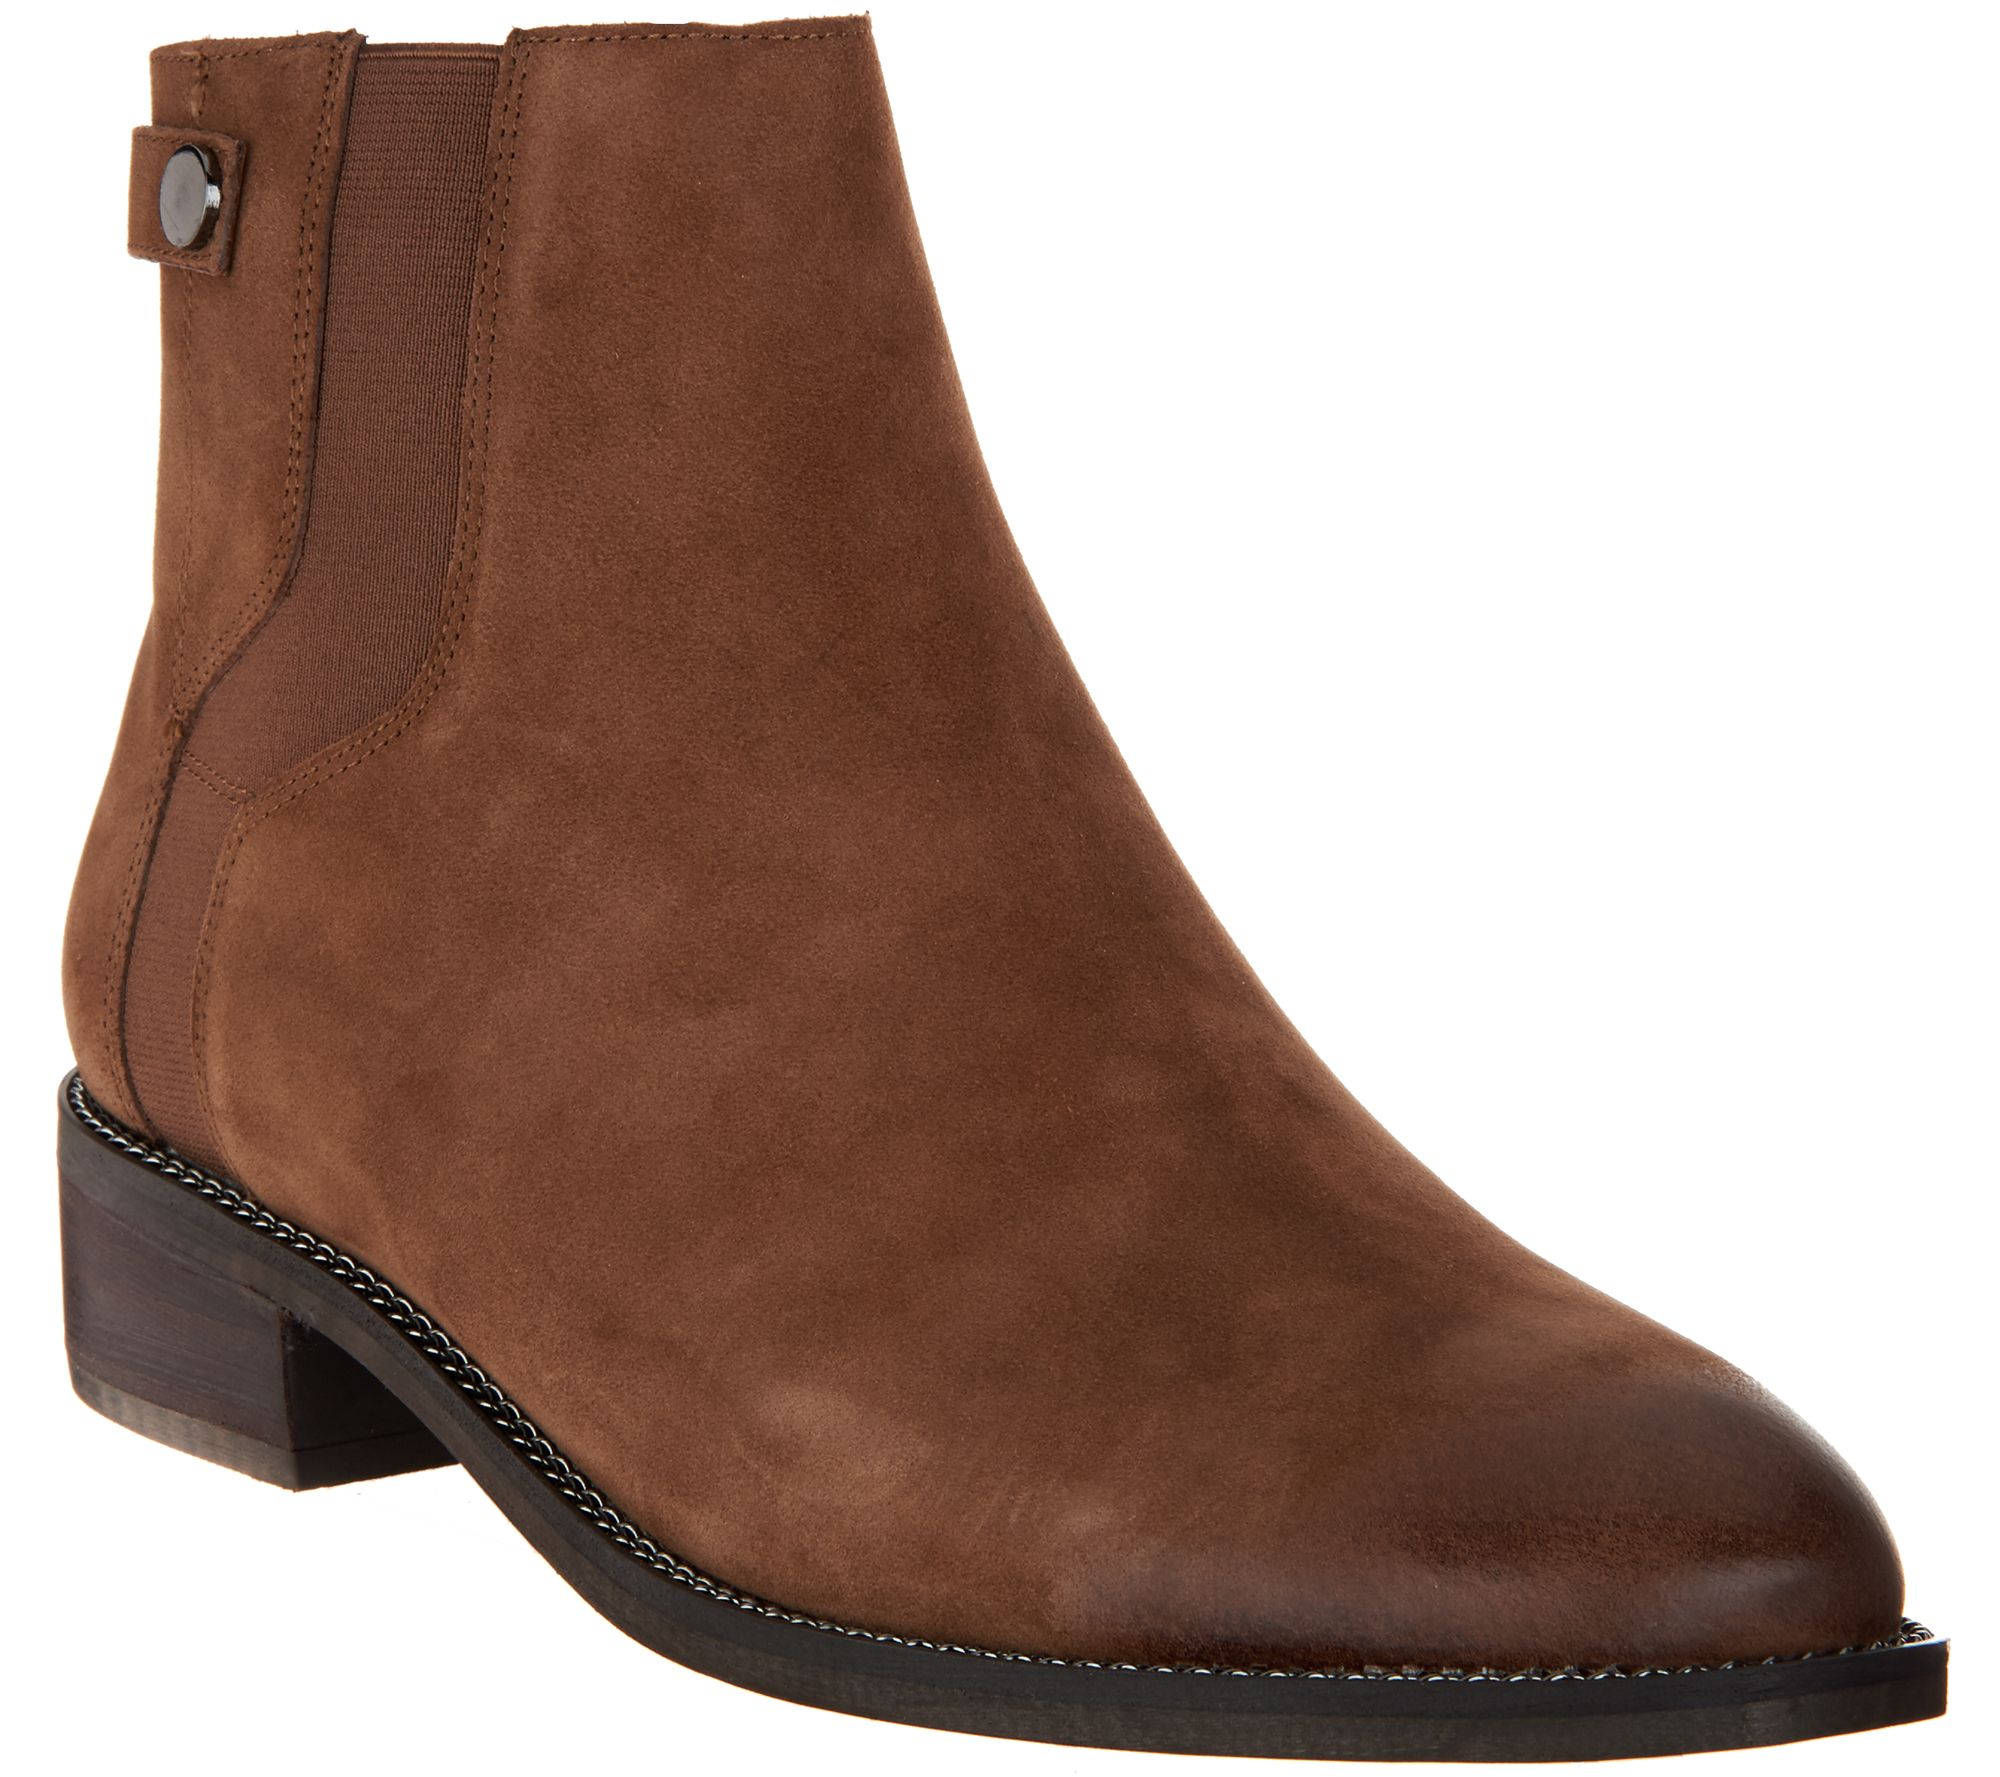 256c6c96a9 Franco Sarto Leather Ankle Boots - Brandy - Page 1 — QVC.com